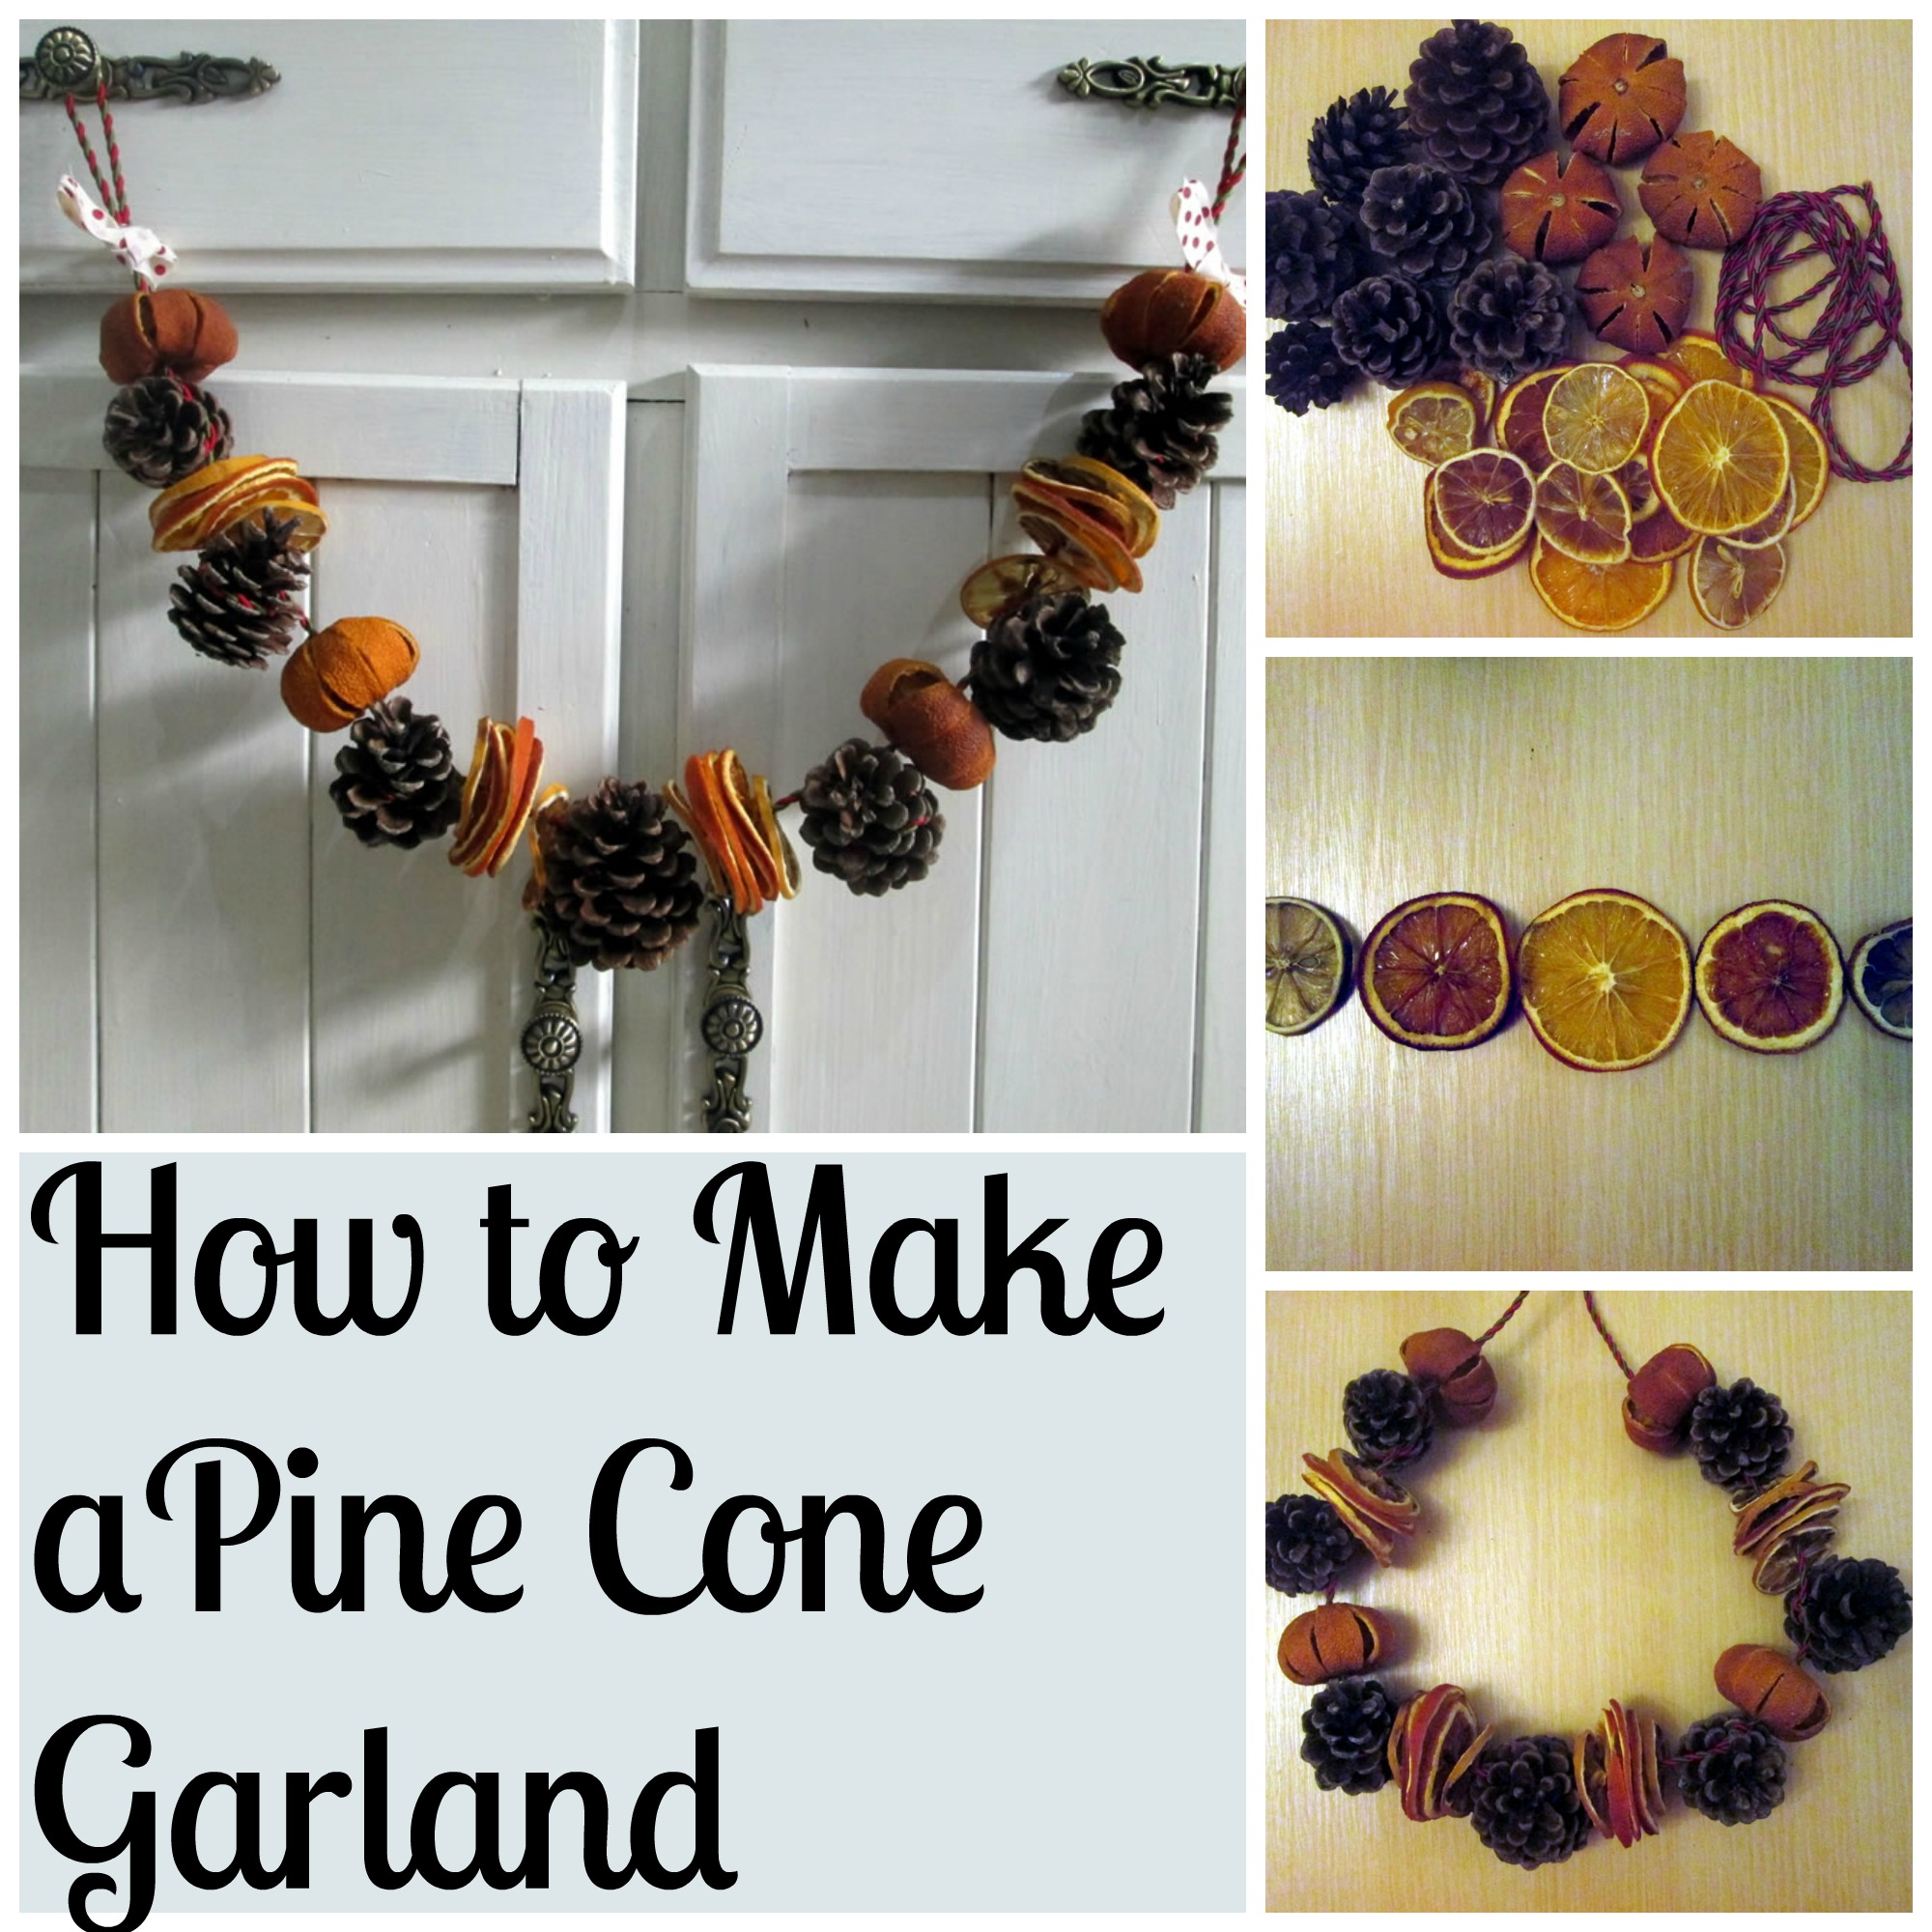 How to Make a Pine Cone Garland - Tea and a Sewing Machine